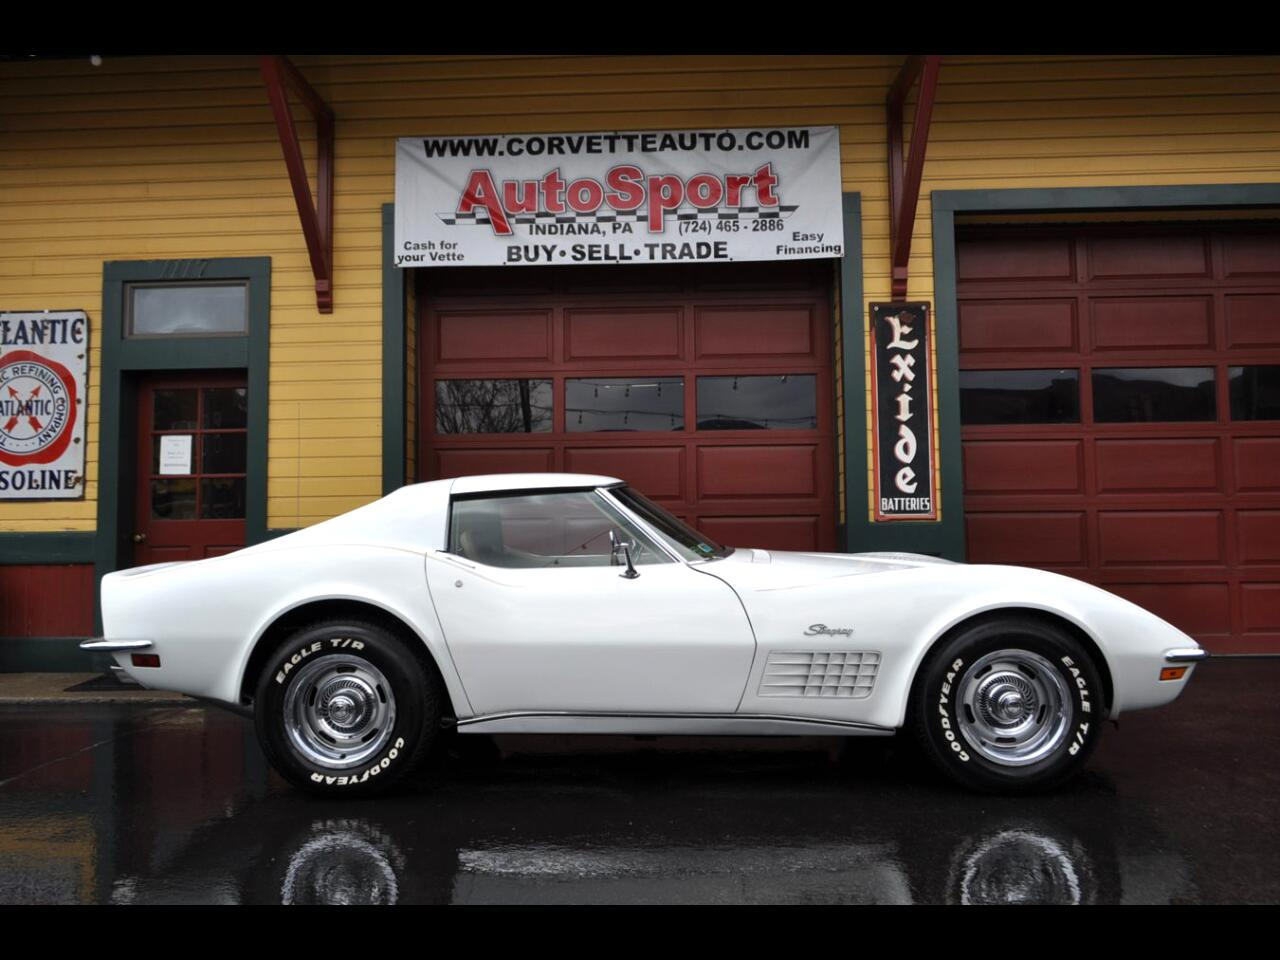 1970 Chevrolet Corvette 1970 #'s Matching Fully Loaded AC PS PB PW Leather